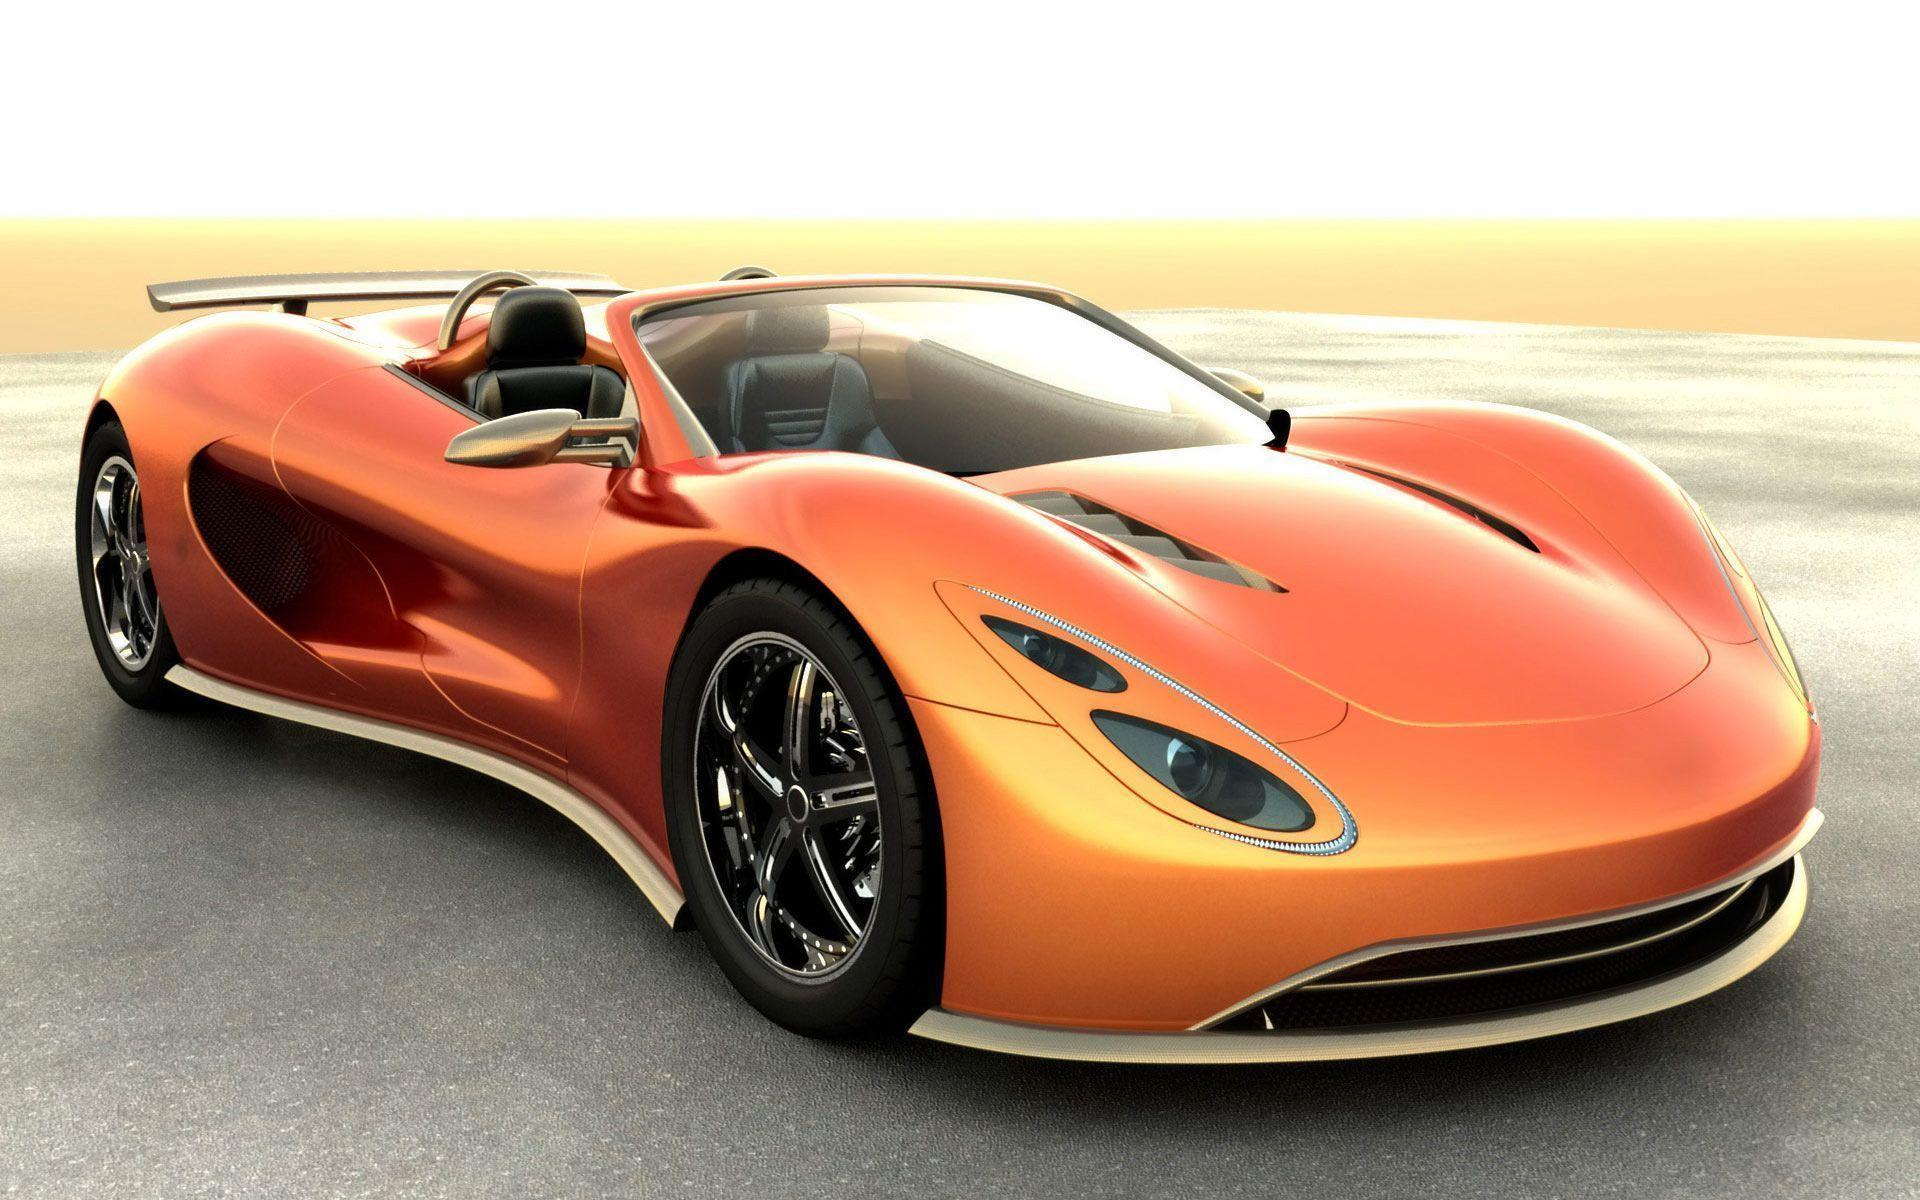 Ronn Motor Scorpion Super Car 2 Wallpaper | HD Car Wallpapers